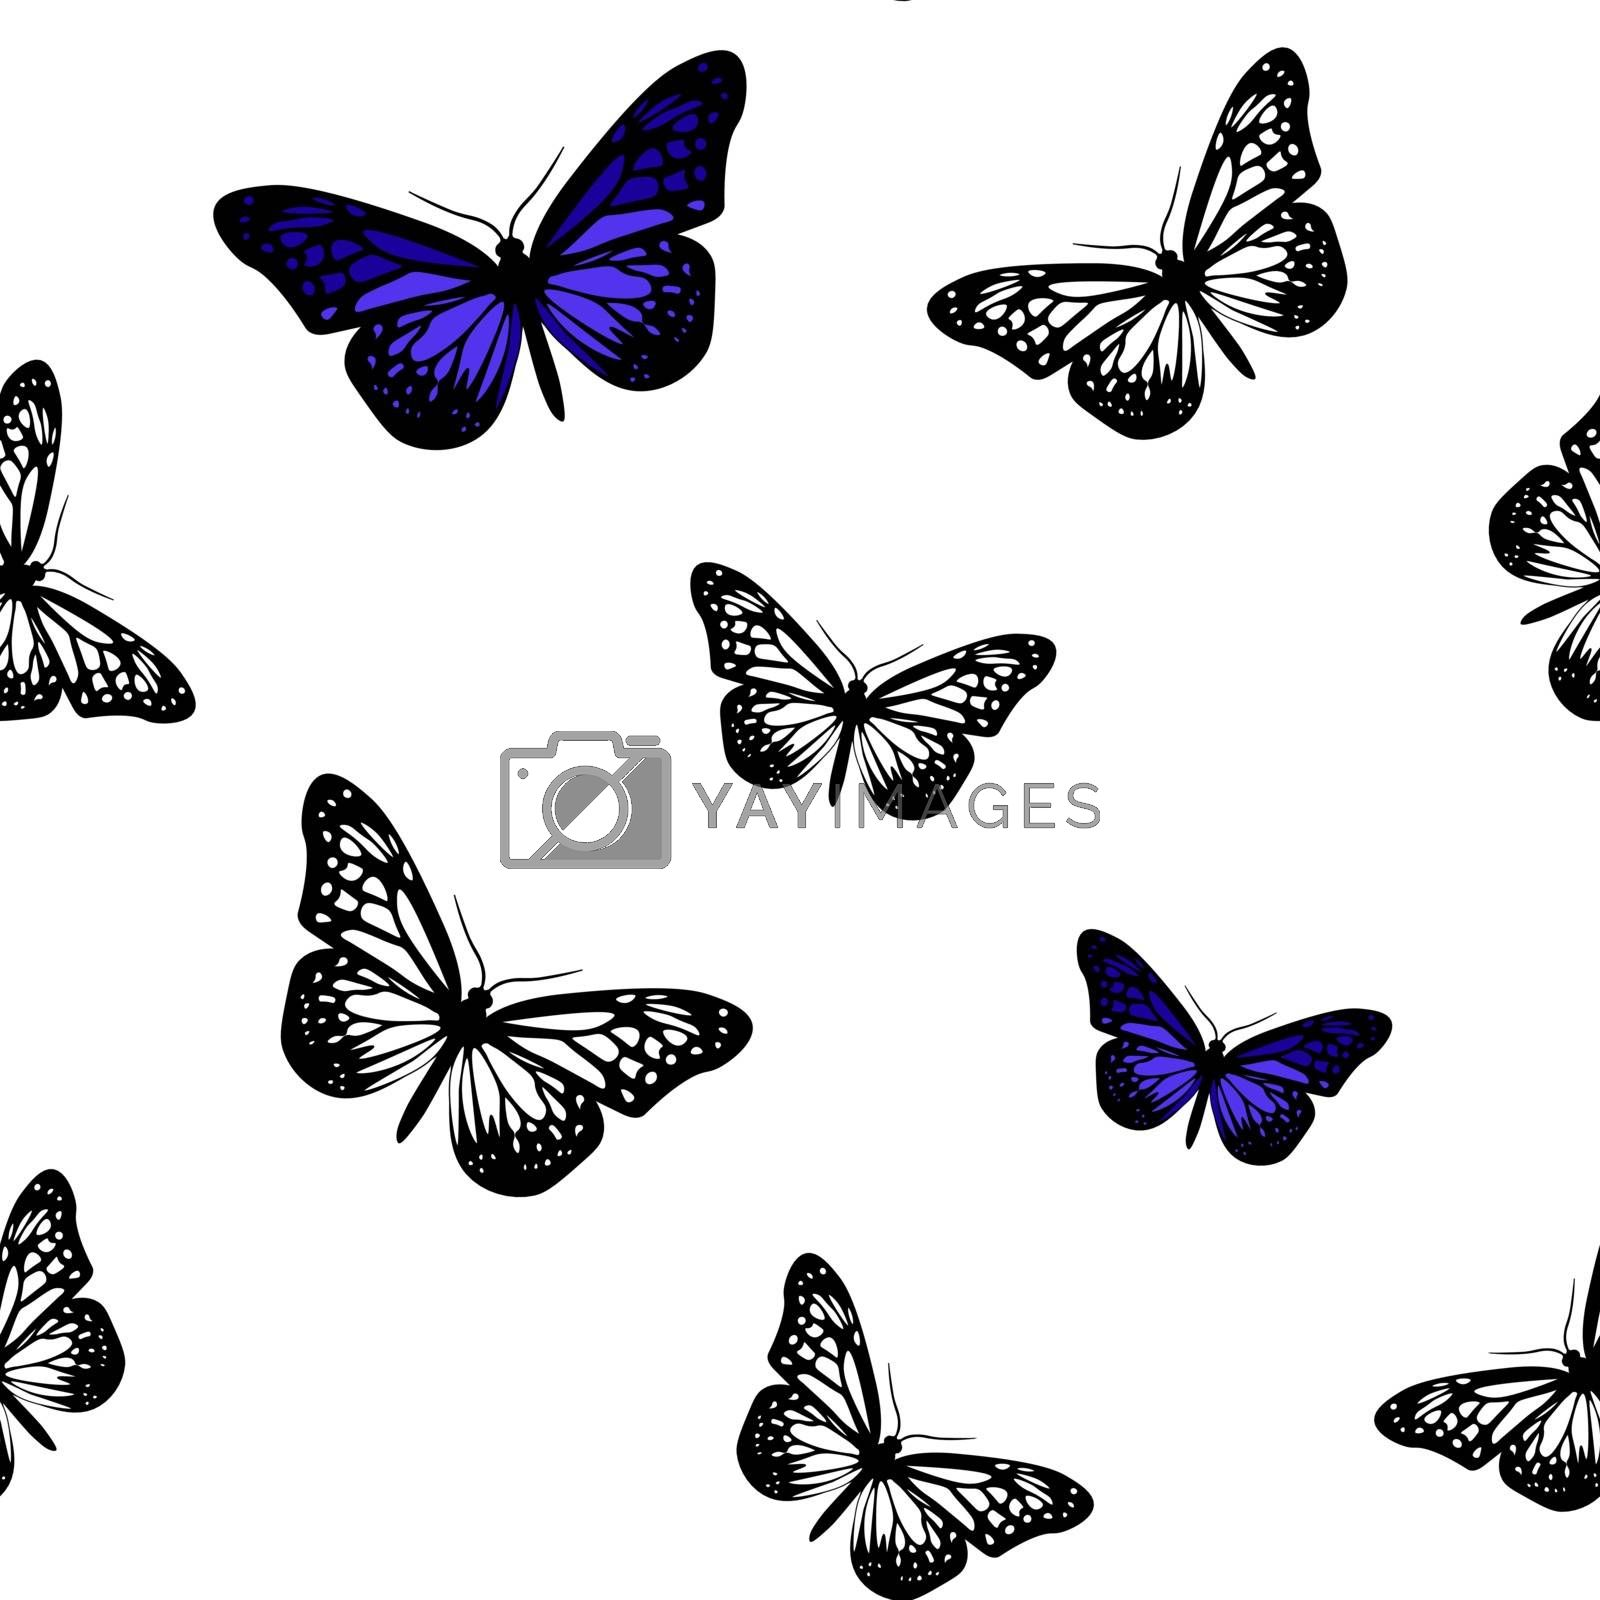 Seamless pattern with realistic white and blue butterflies on white background